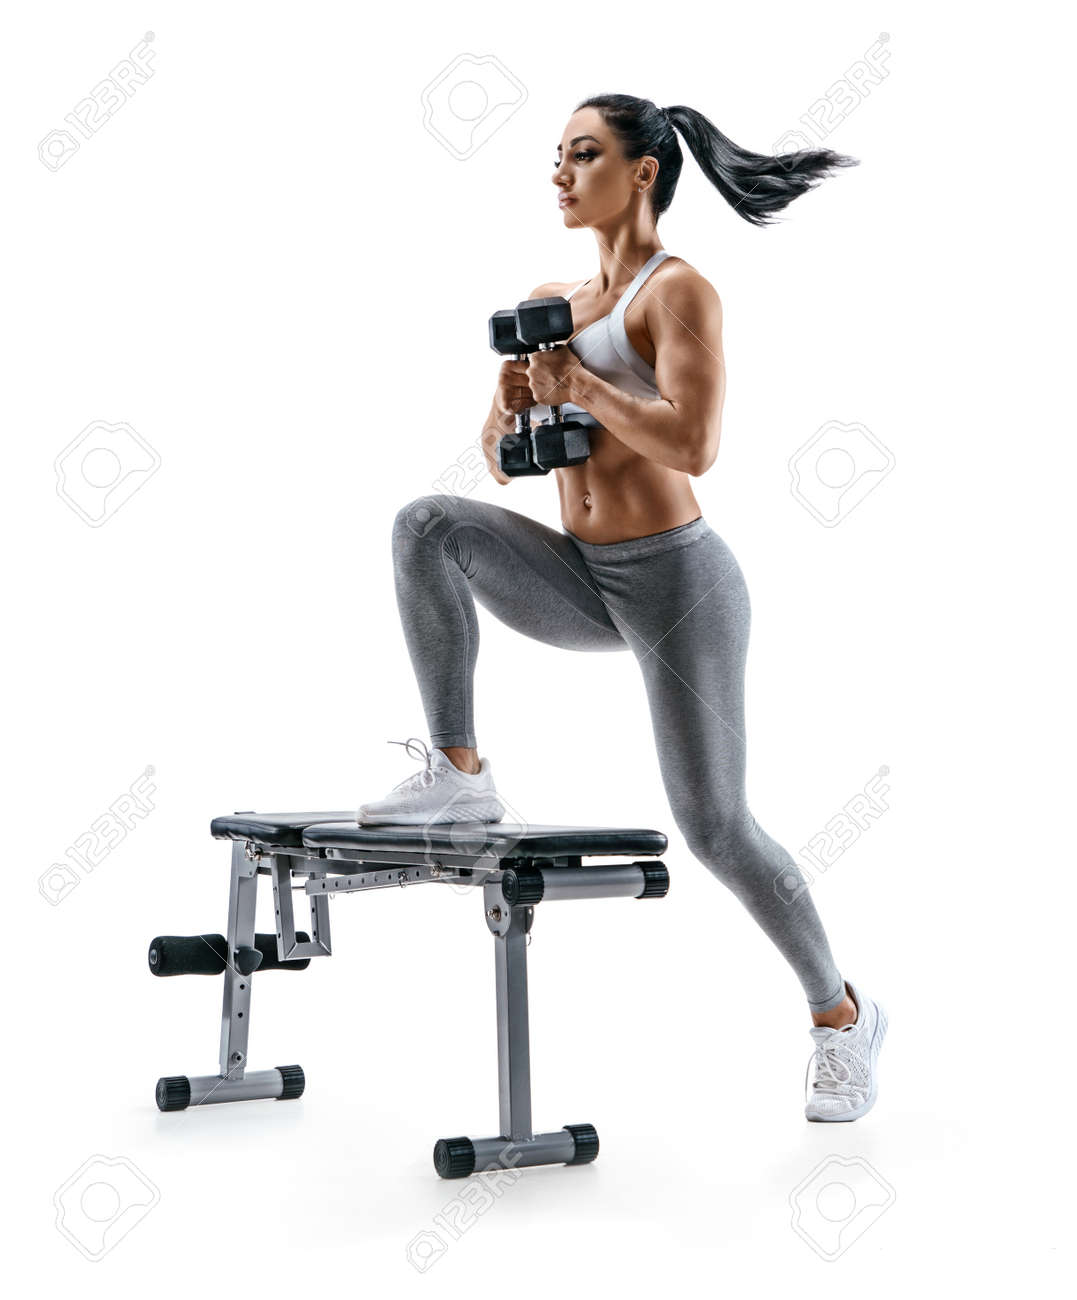 Fitness woman doing jump step ups exercise with dumbbells on bench. Photo of attractive woman in sportswear isolated on white background. Strength and motivation - 106565137